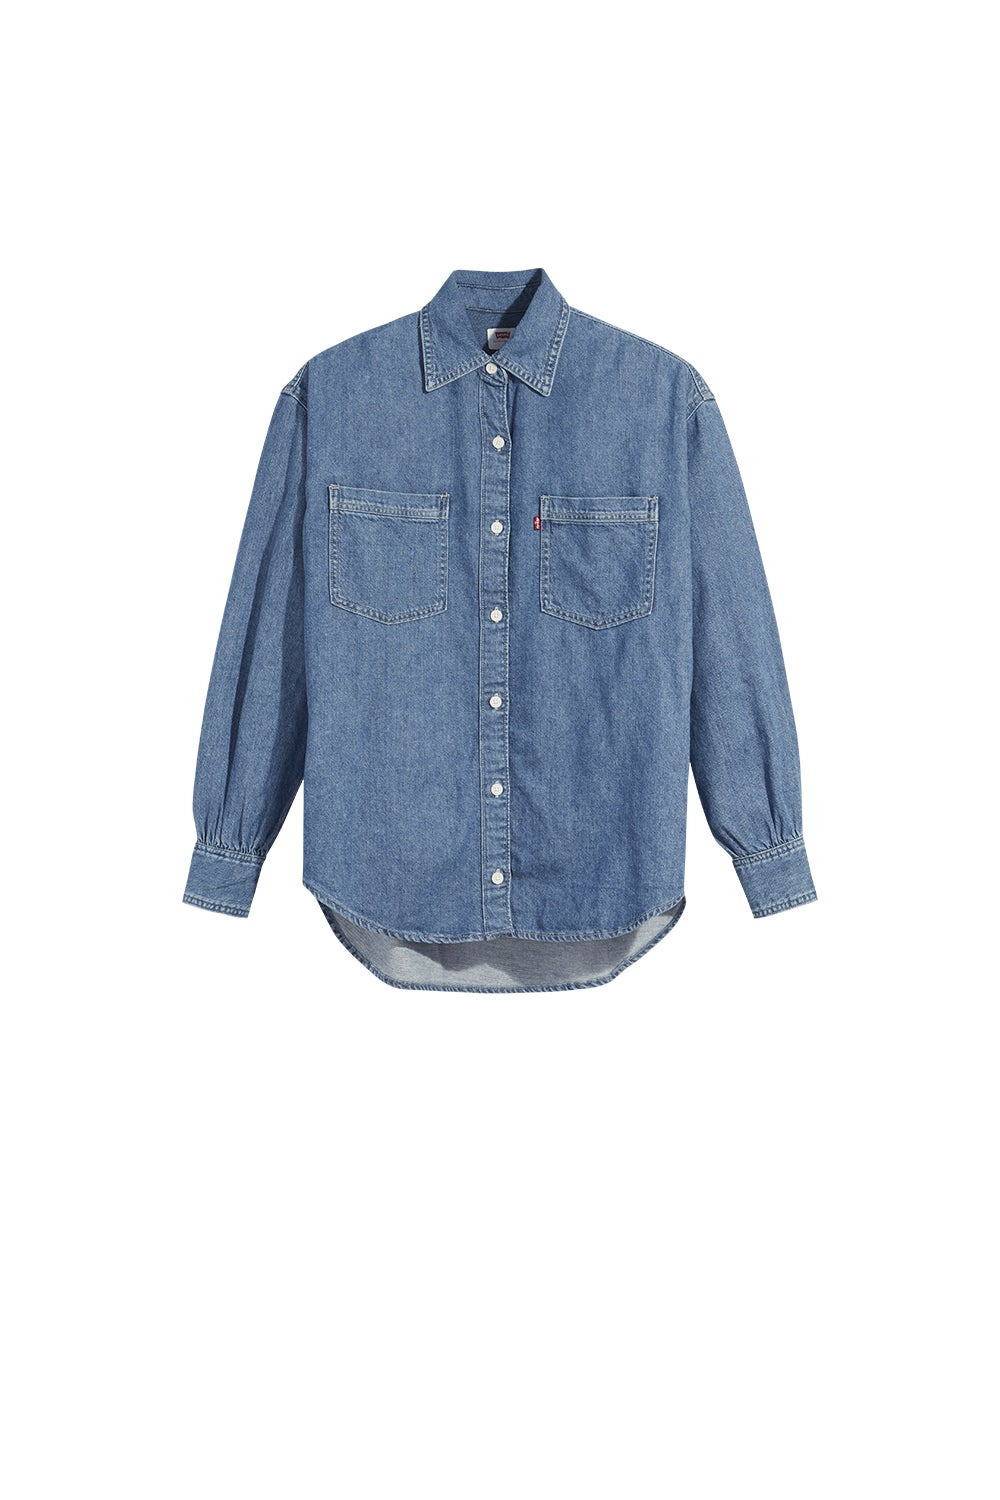 Levi's Remi Utility Shirt Quite Frankly